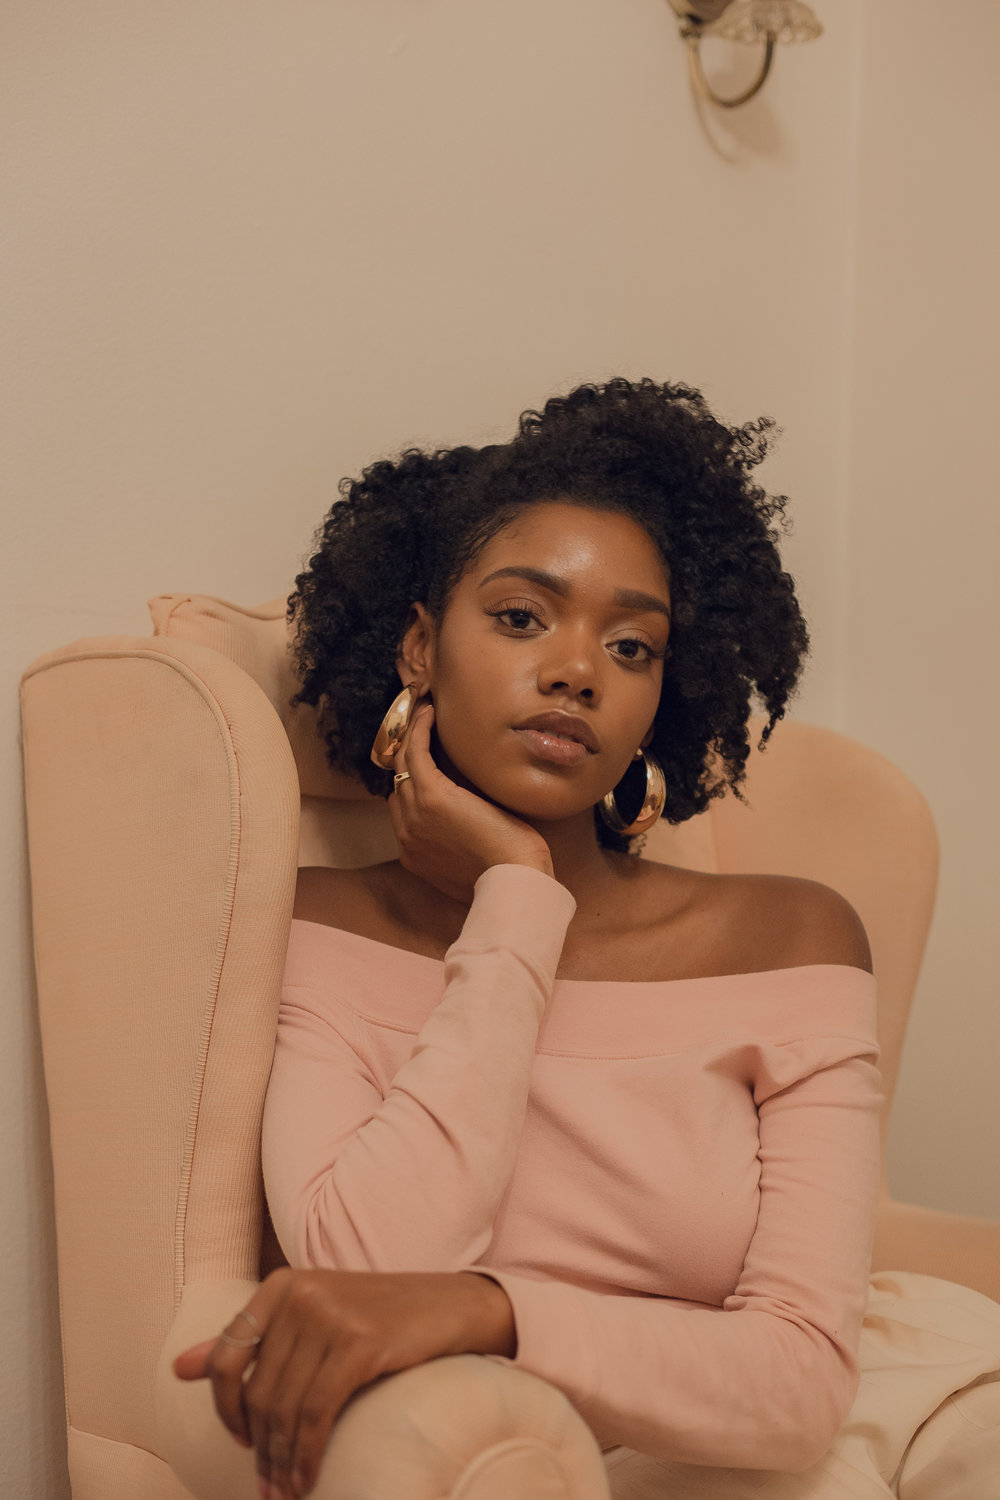 Imani Mixon is a Detroit-based and embraced writer who explores stories of acquiring and returning, necessity and desire, and the overwhelming coolness of all things Black. She is becoming the writer, poet, and person she has needed all along.